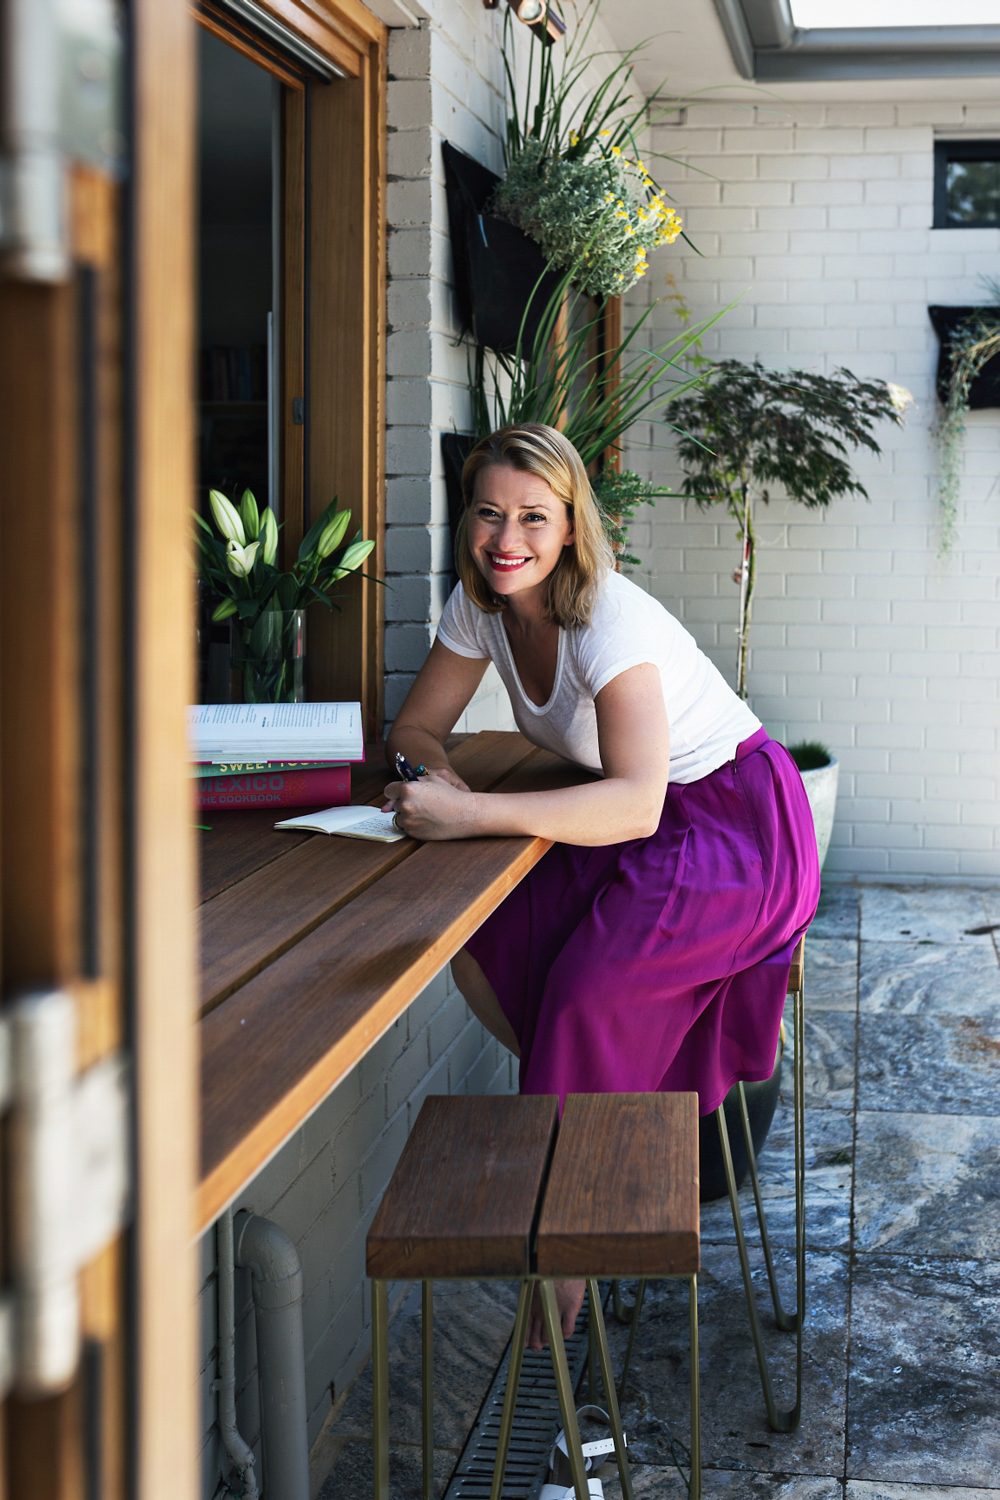 Food writer Katrina Meynink takes notes for her new cookbook during portrait session in Sydney Australia.